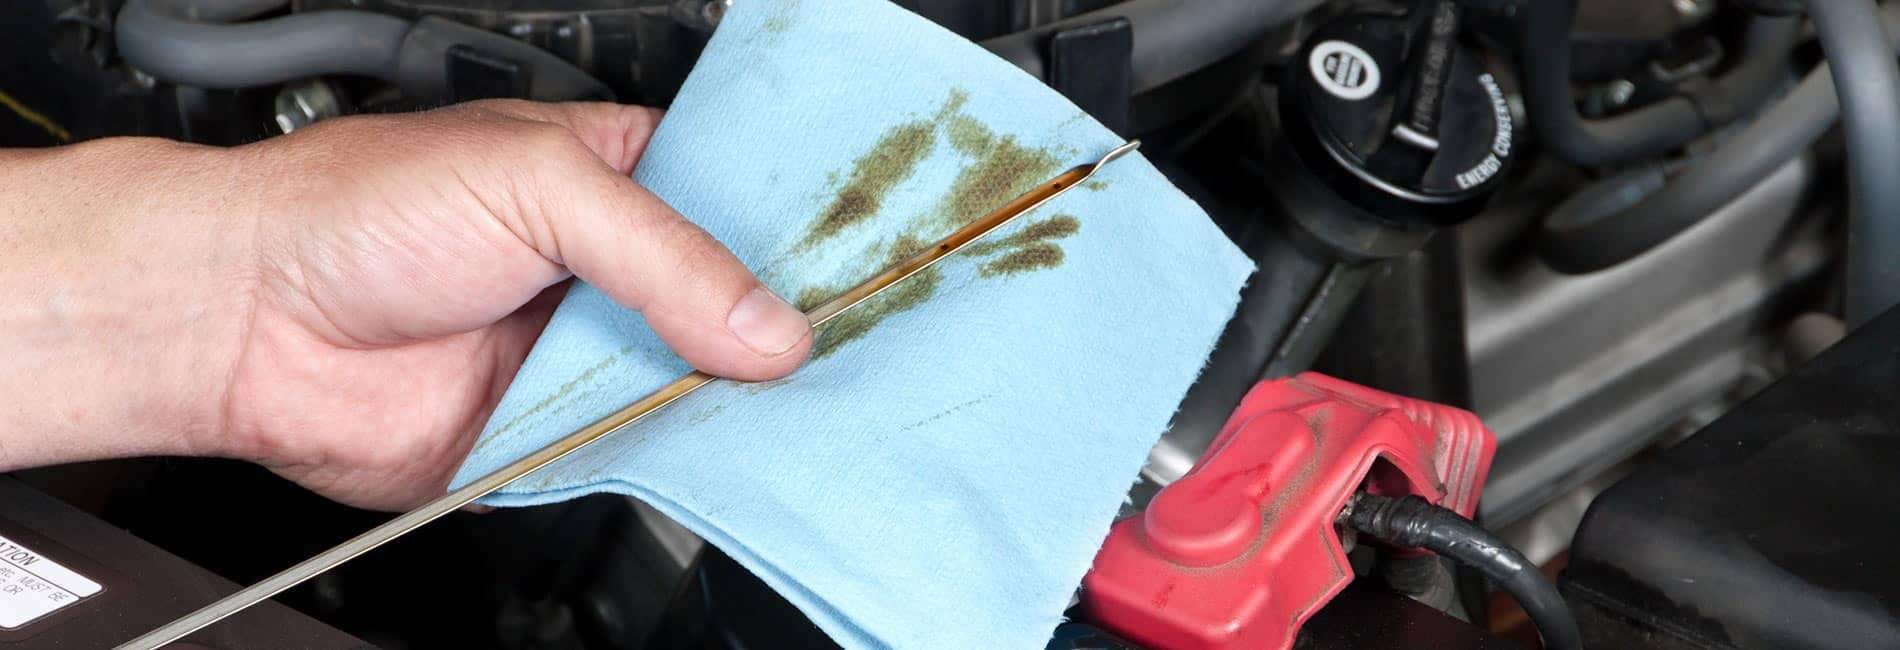 Oil picture of dipstick getting wiped onto blue papertowel